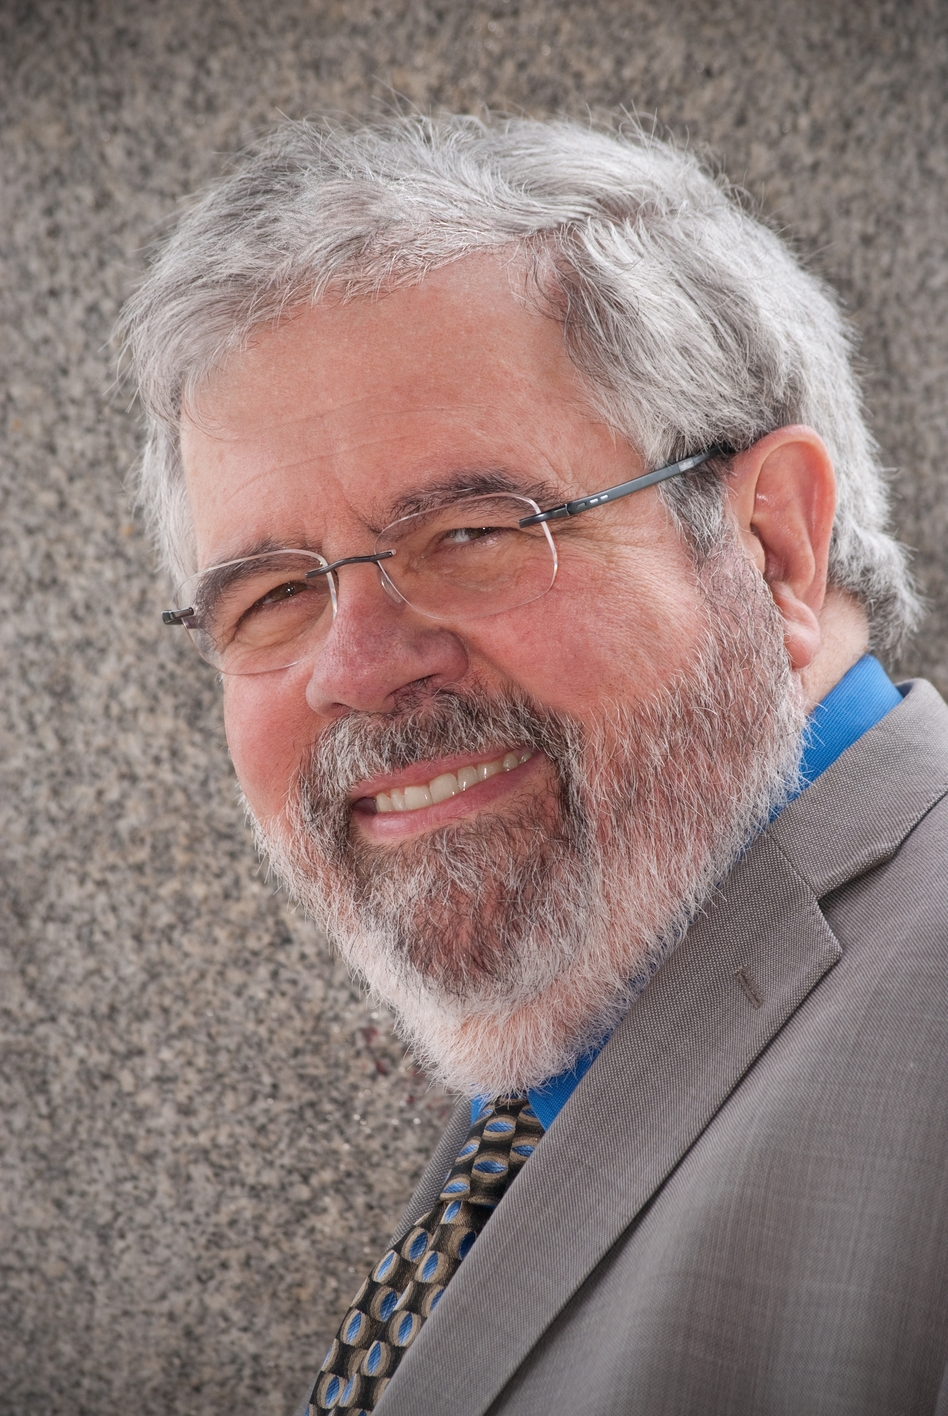 Investigative journalist David Cay Johnston is also the author of Free Lunch and Perfectly Legal. (Penguin)